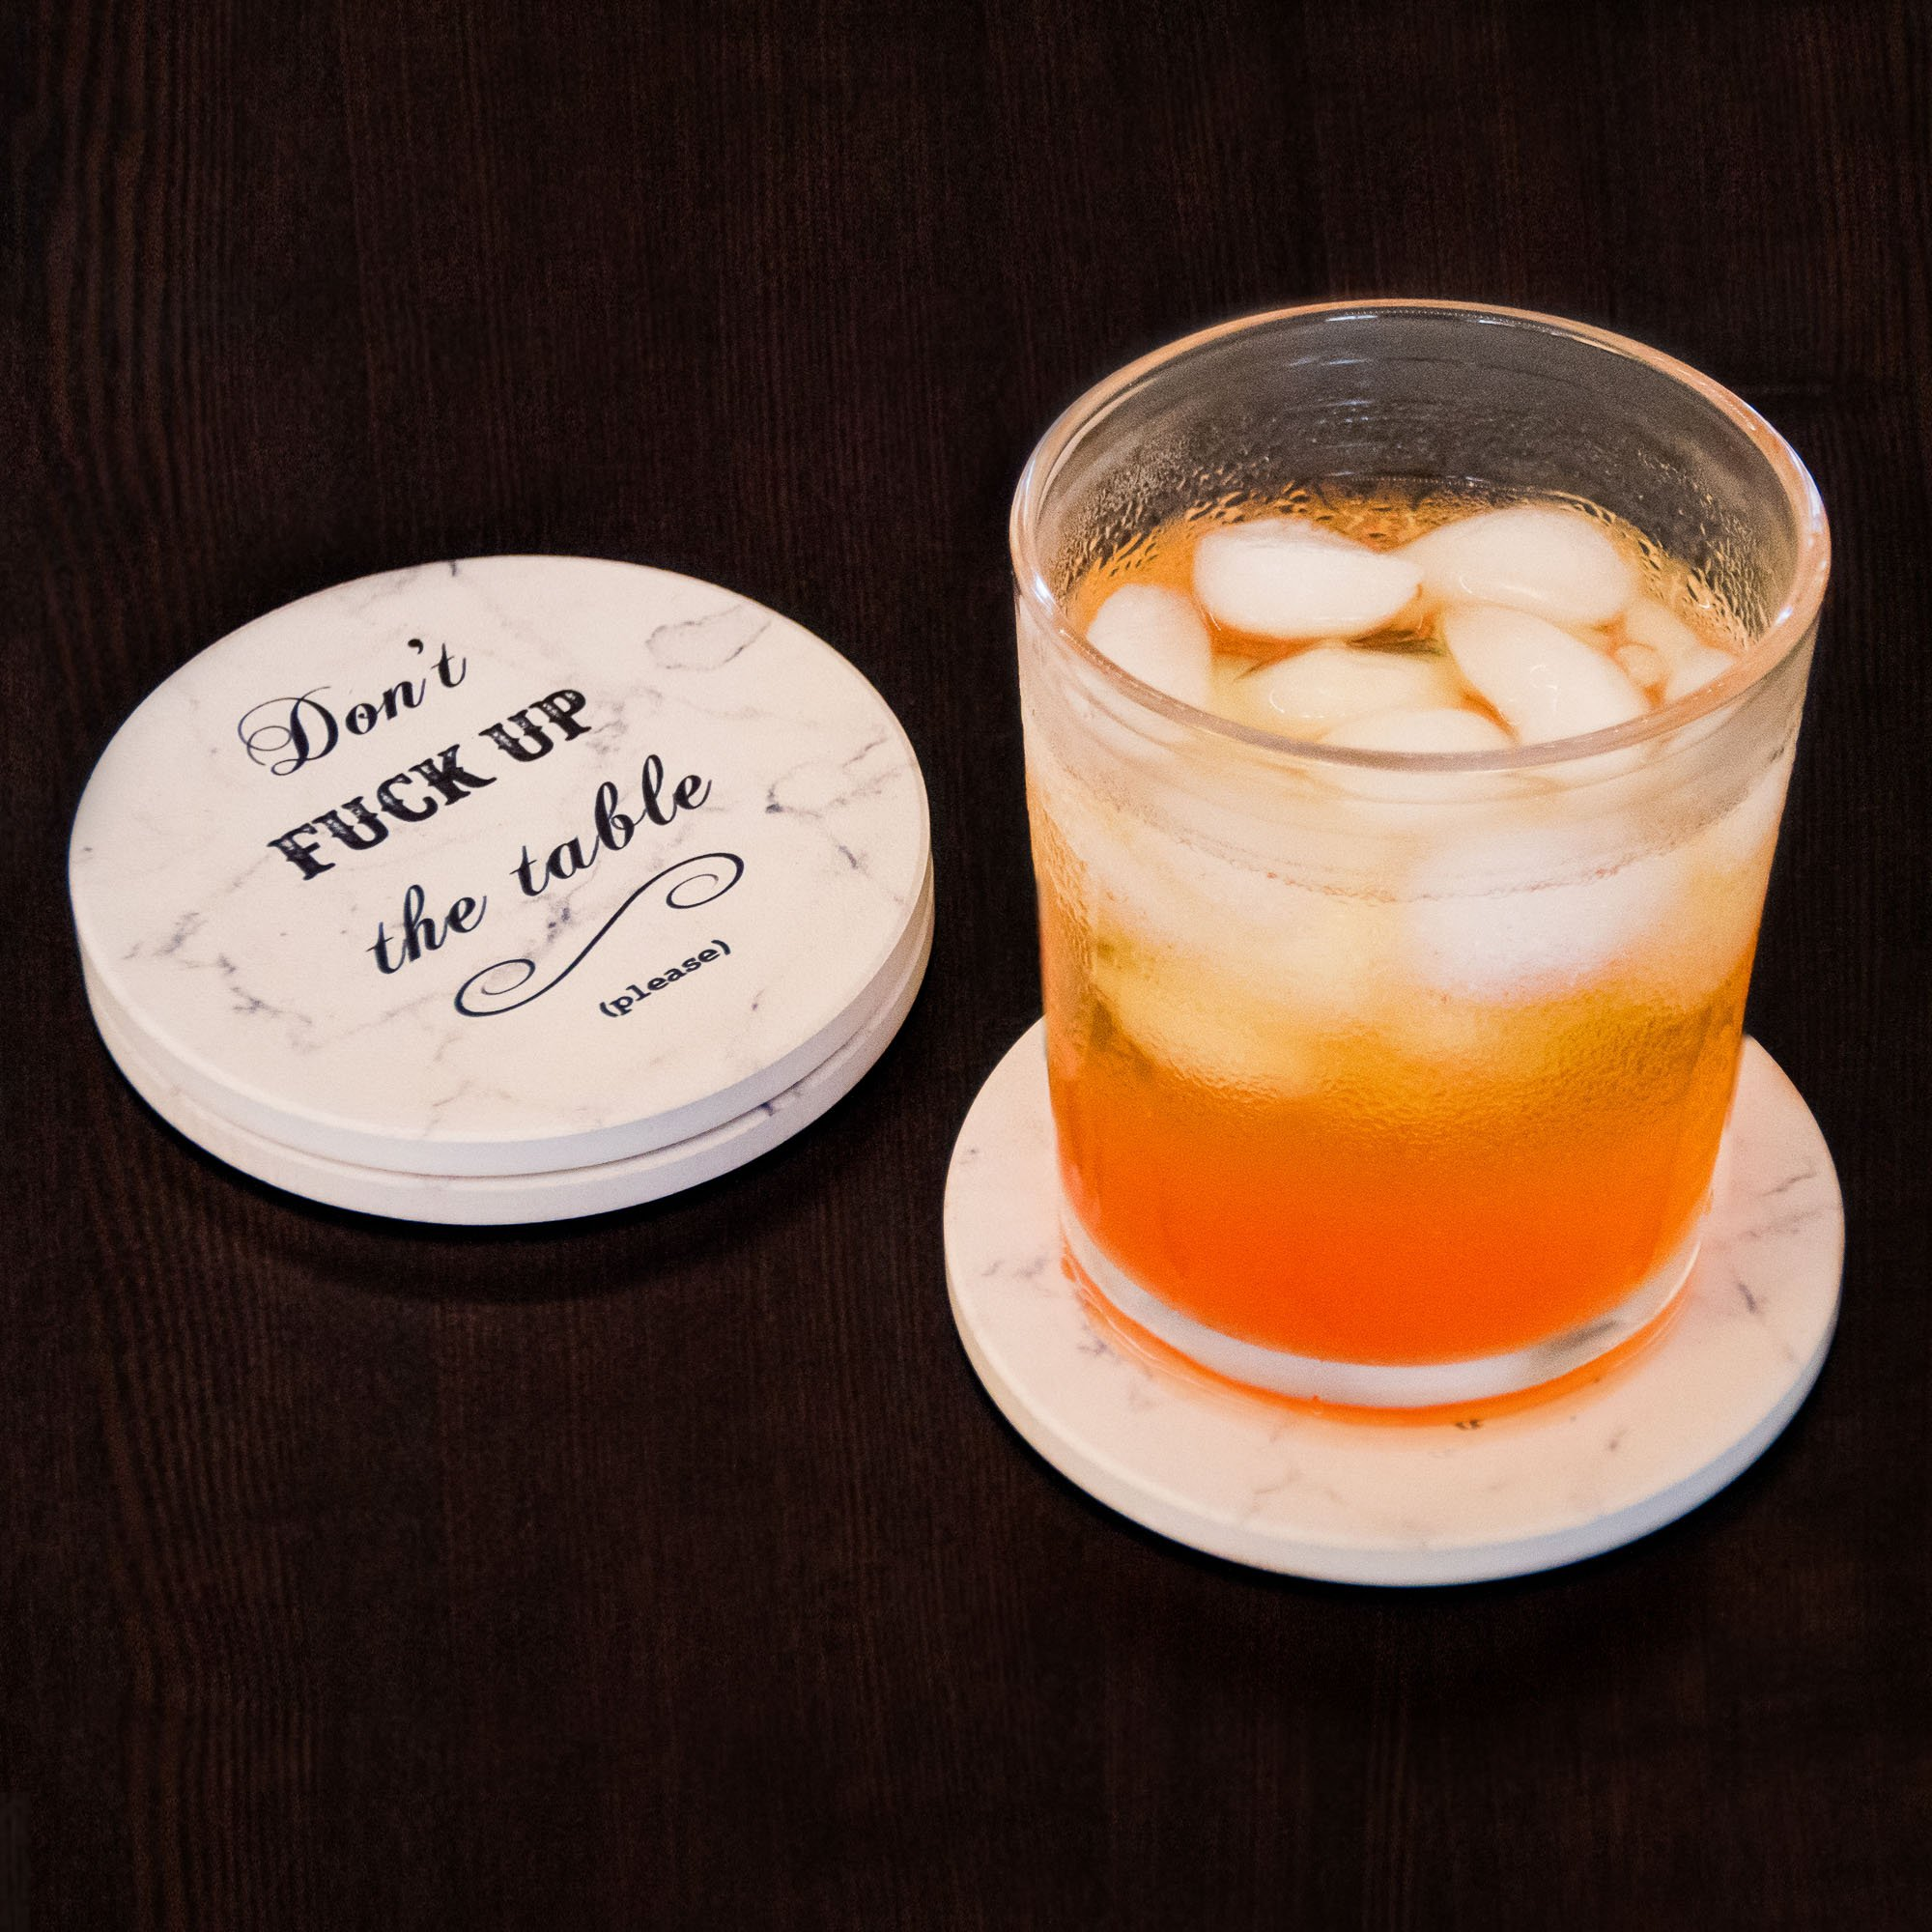 Urban Mosh Coasters for Drinks - Funny Absorbent Ceramic Stone Set of 6 White Marble Style with Cork Backing and Holder Included, Protect Your Furniture From Spills, Scratches, Water Rings and Damage by Urban Mosh (Image #6)